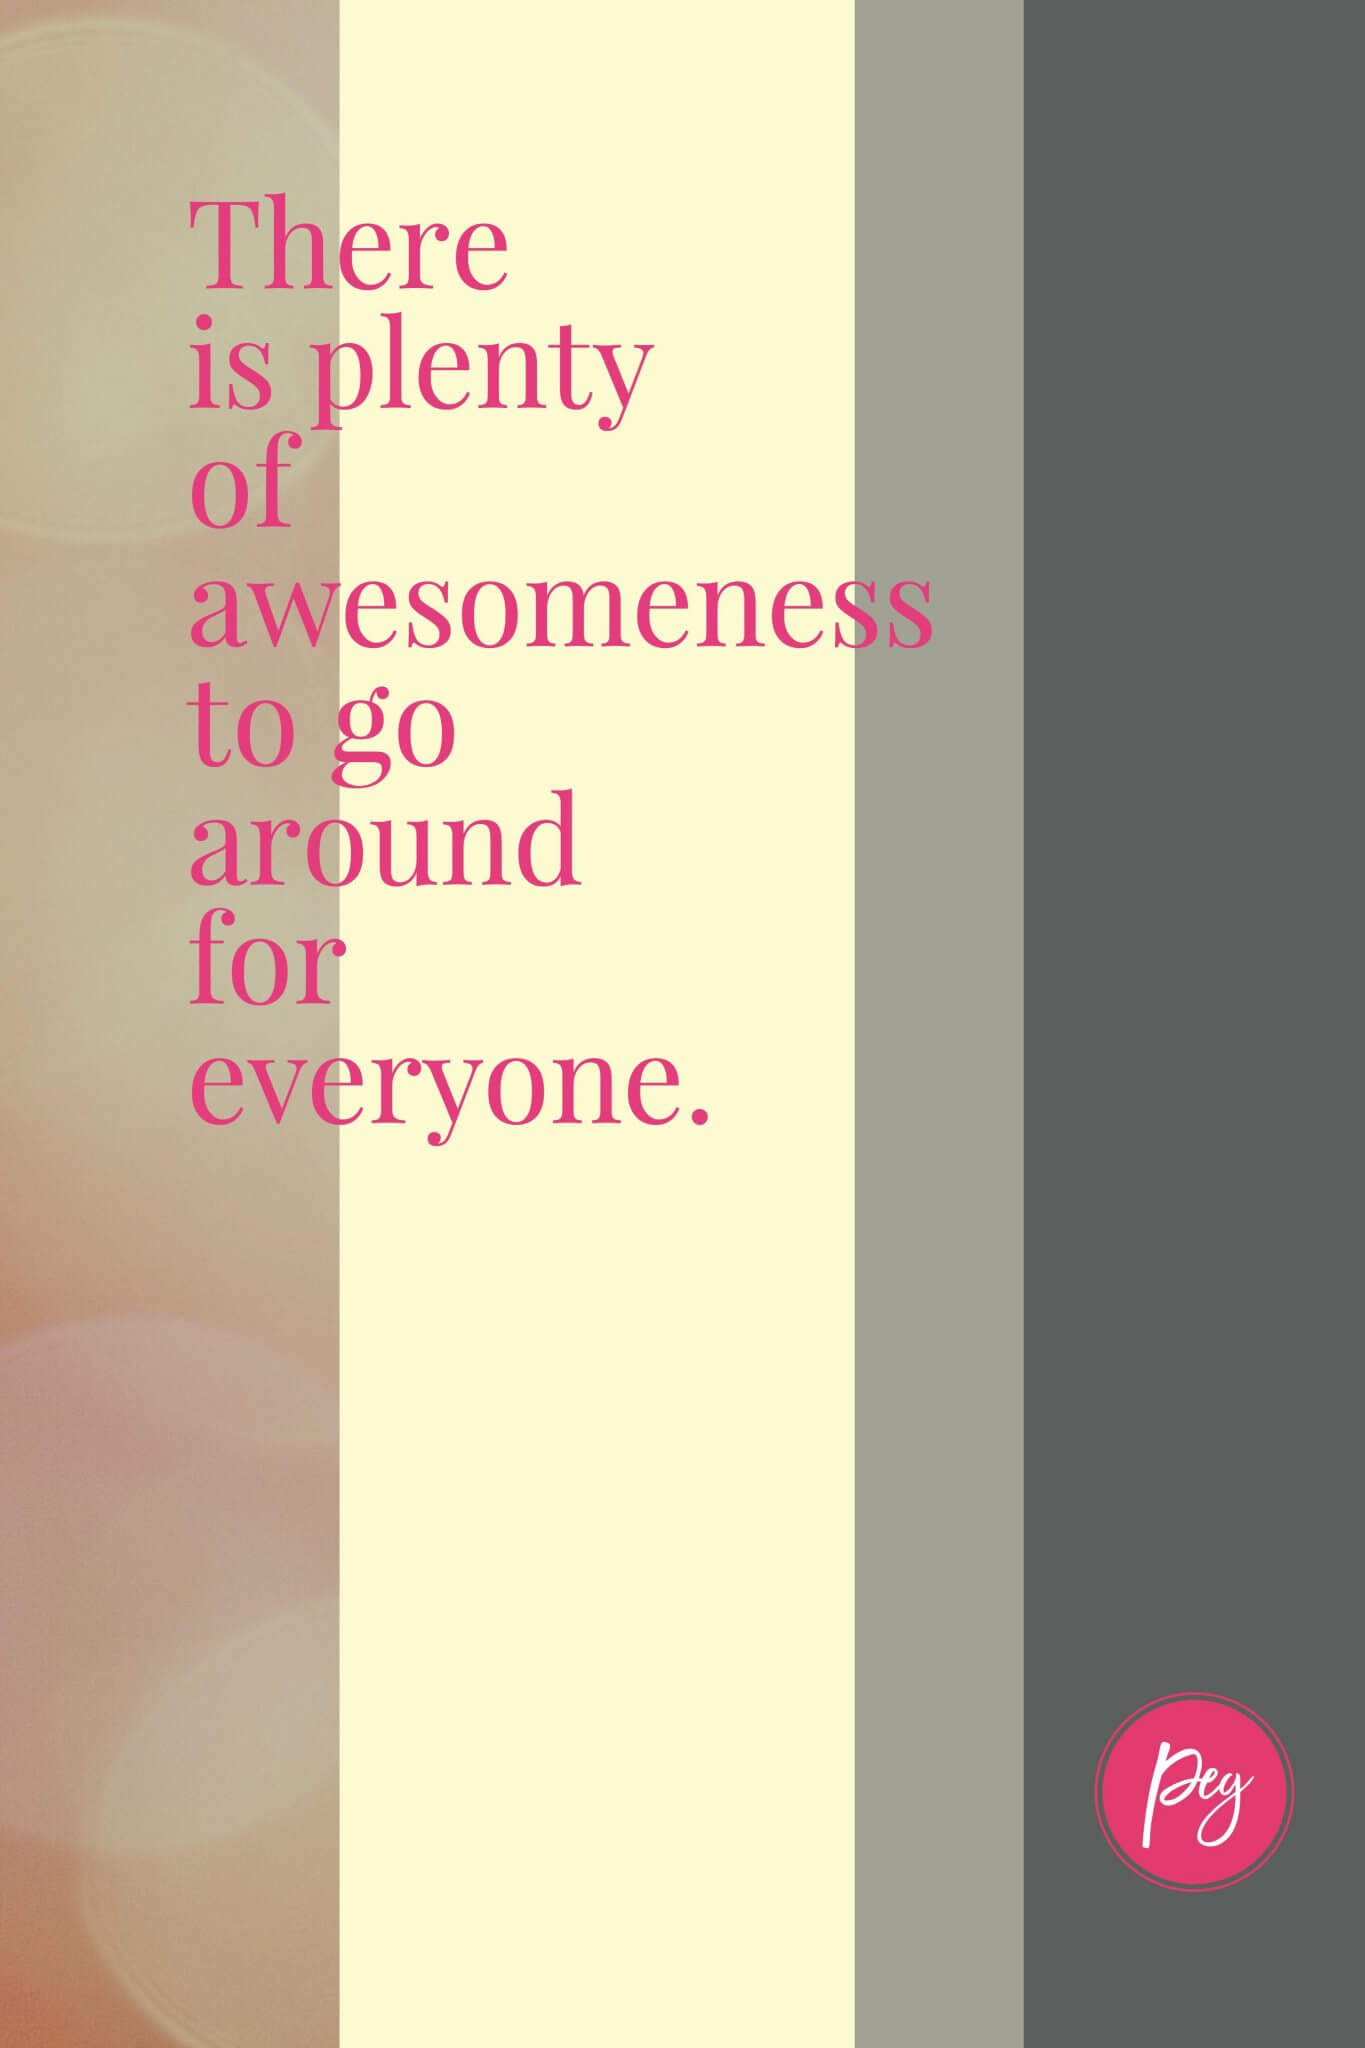 There is plenty of awesomeness to go around for everyone.